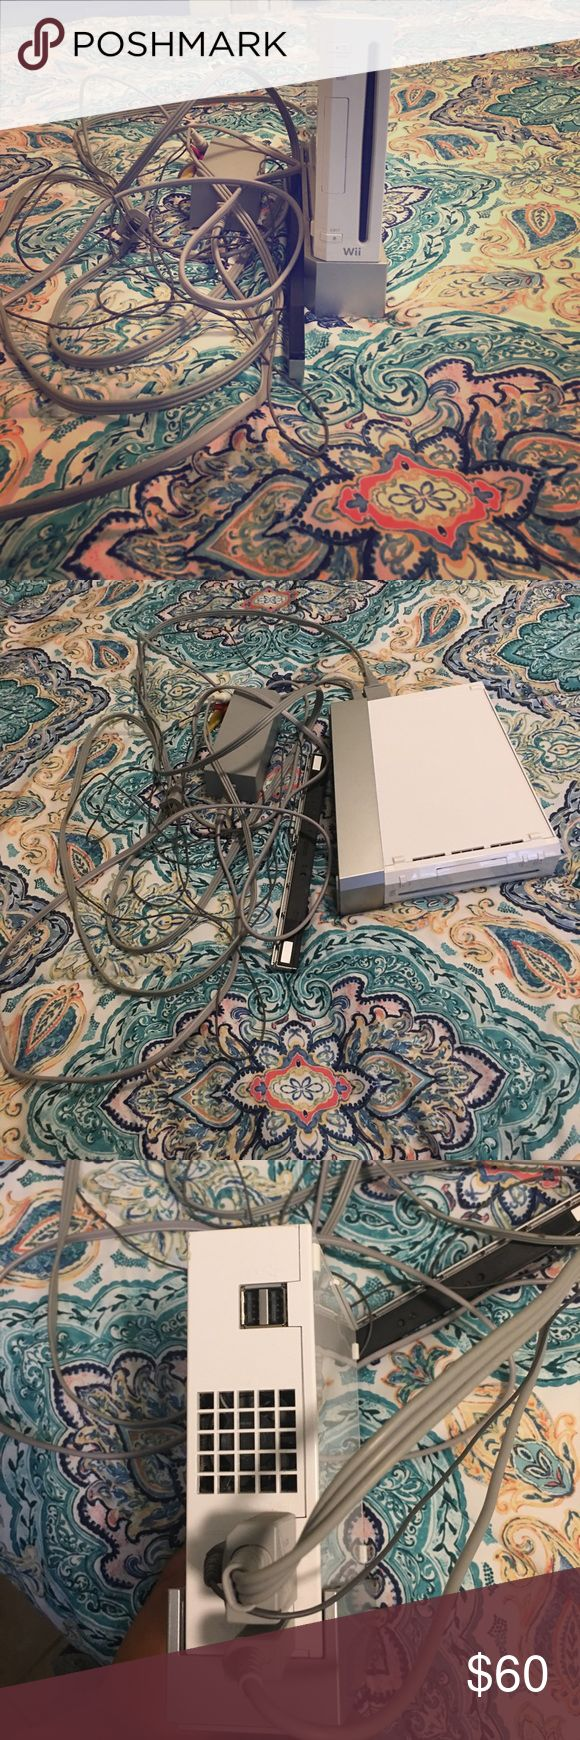 White Wii console White wii console in mid to almost new condition. It has been used a couple of times and works very well. Nintendo Other